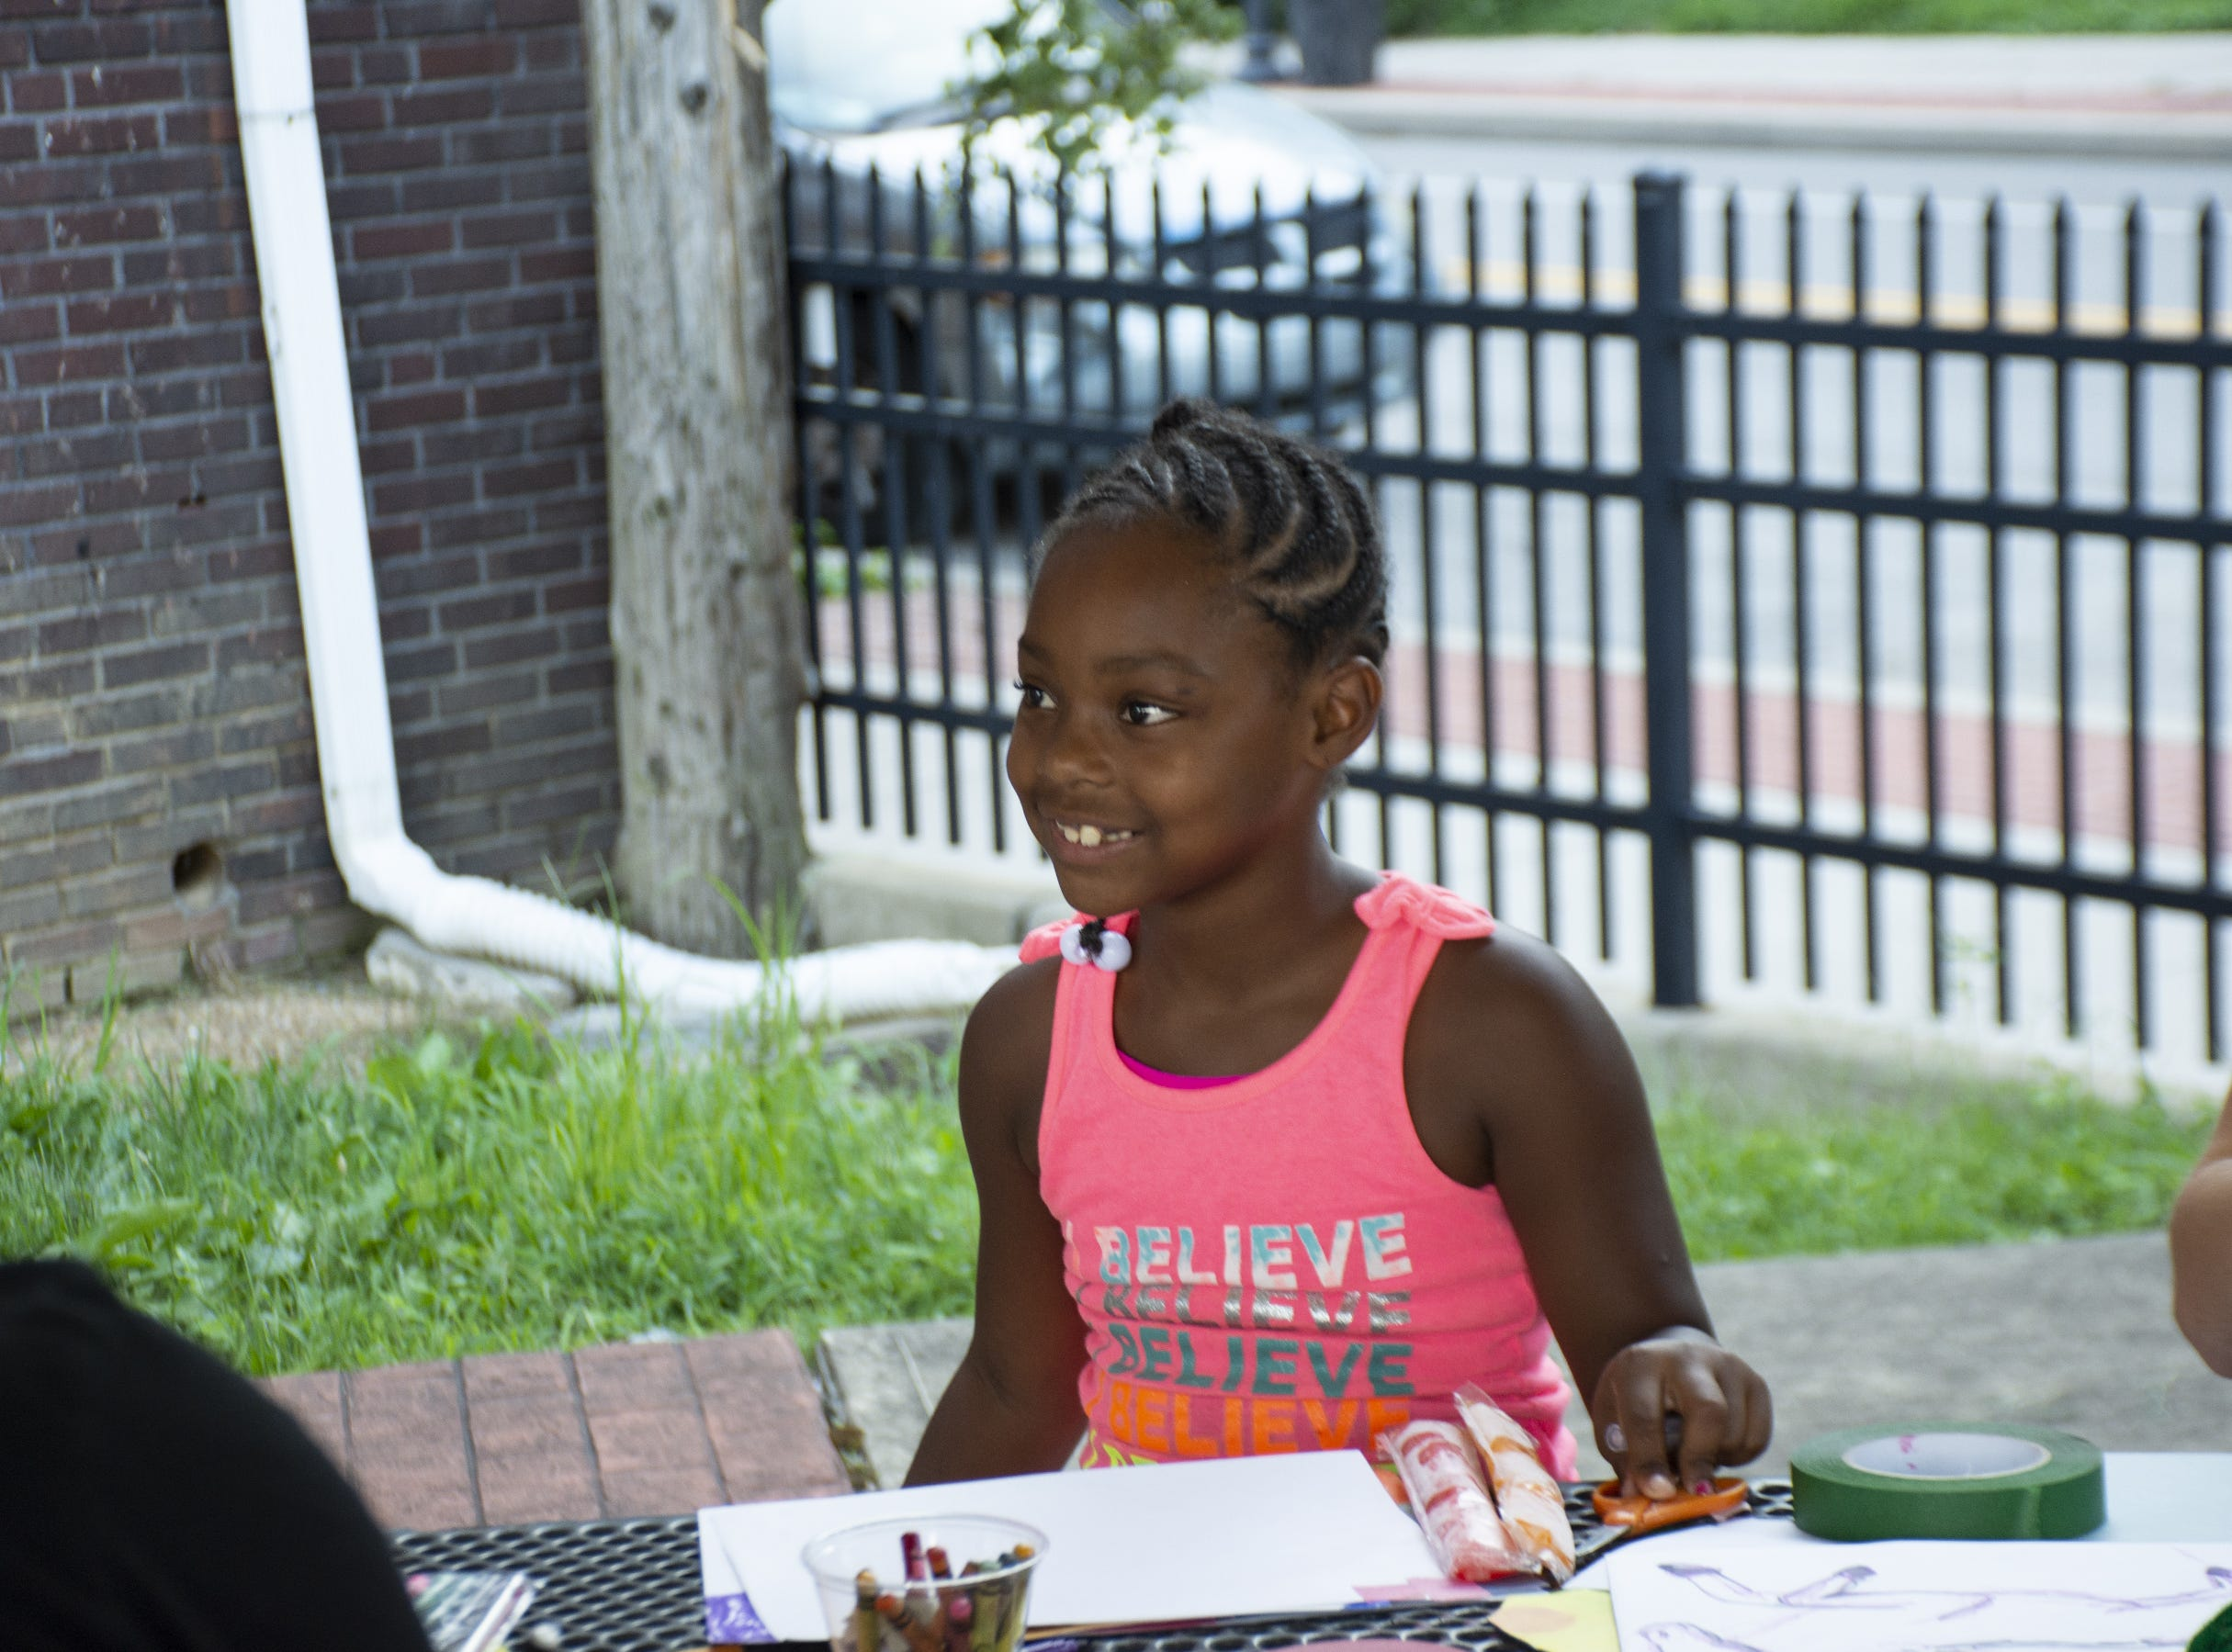 Kee'maiyan Cross, 7, pays attention to a story that one of the coordinators is telling to her at the Art in the Parks event in Renaissance Park in York on Monday.